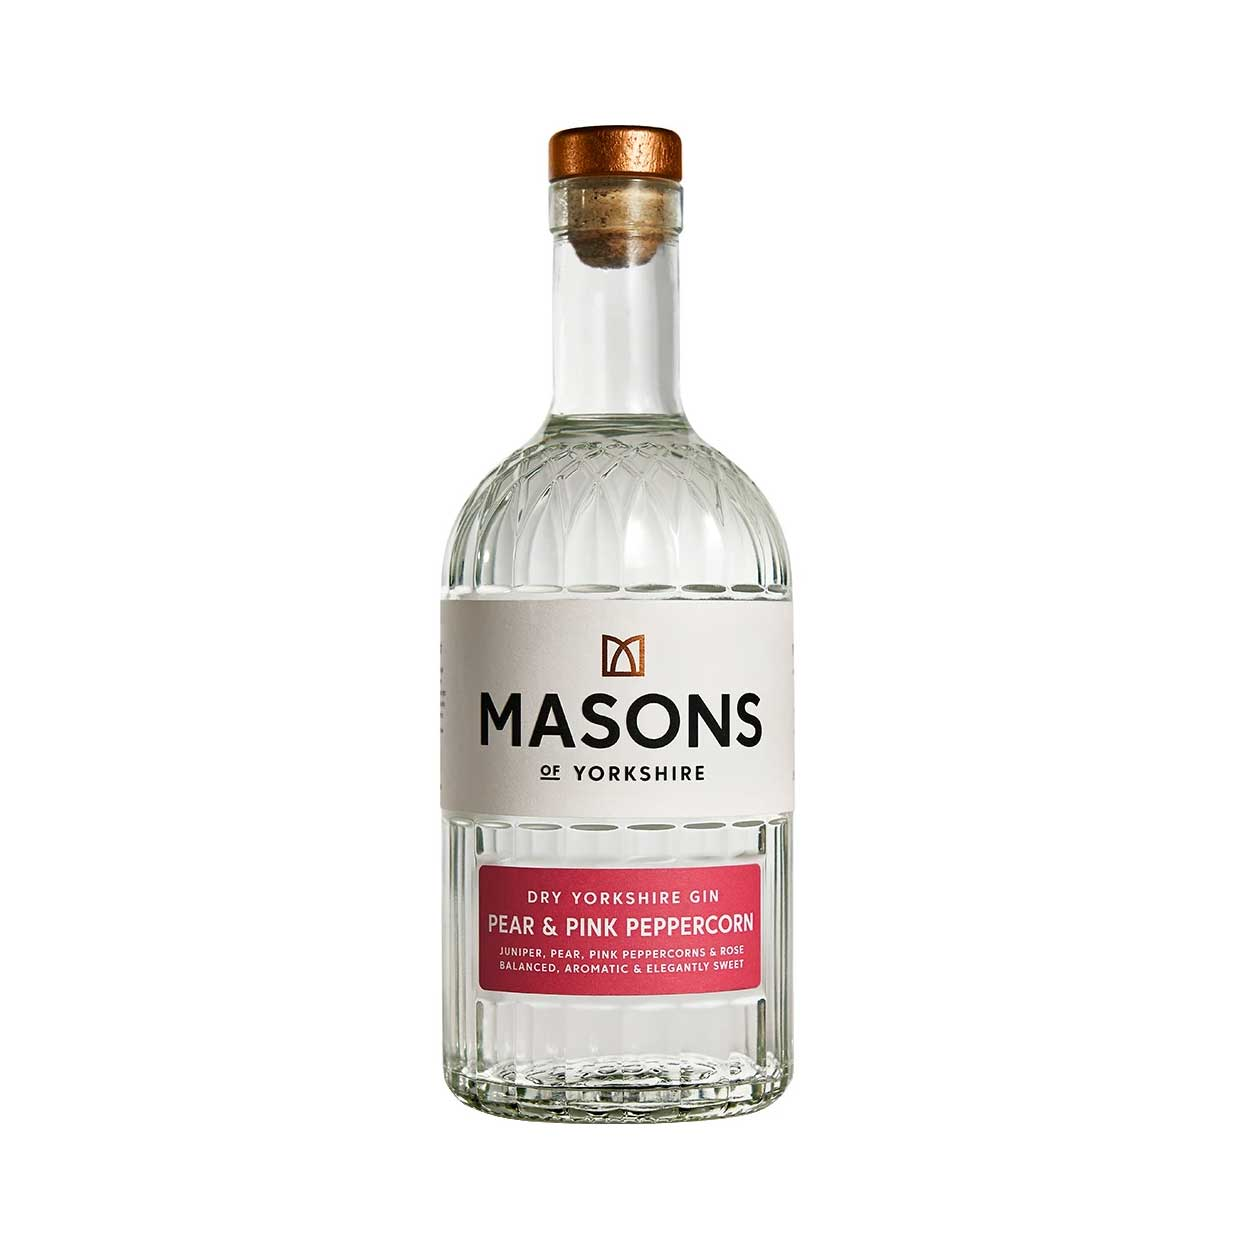 Masons Pear & Pink Peppercorn Yorkshire Gin